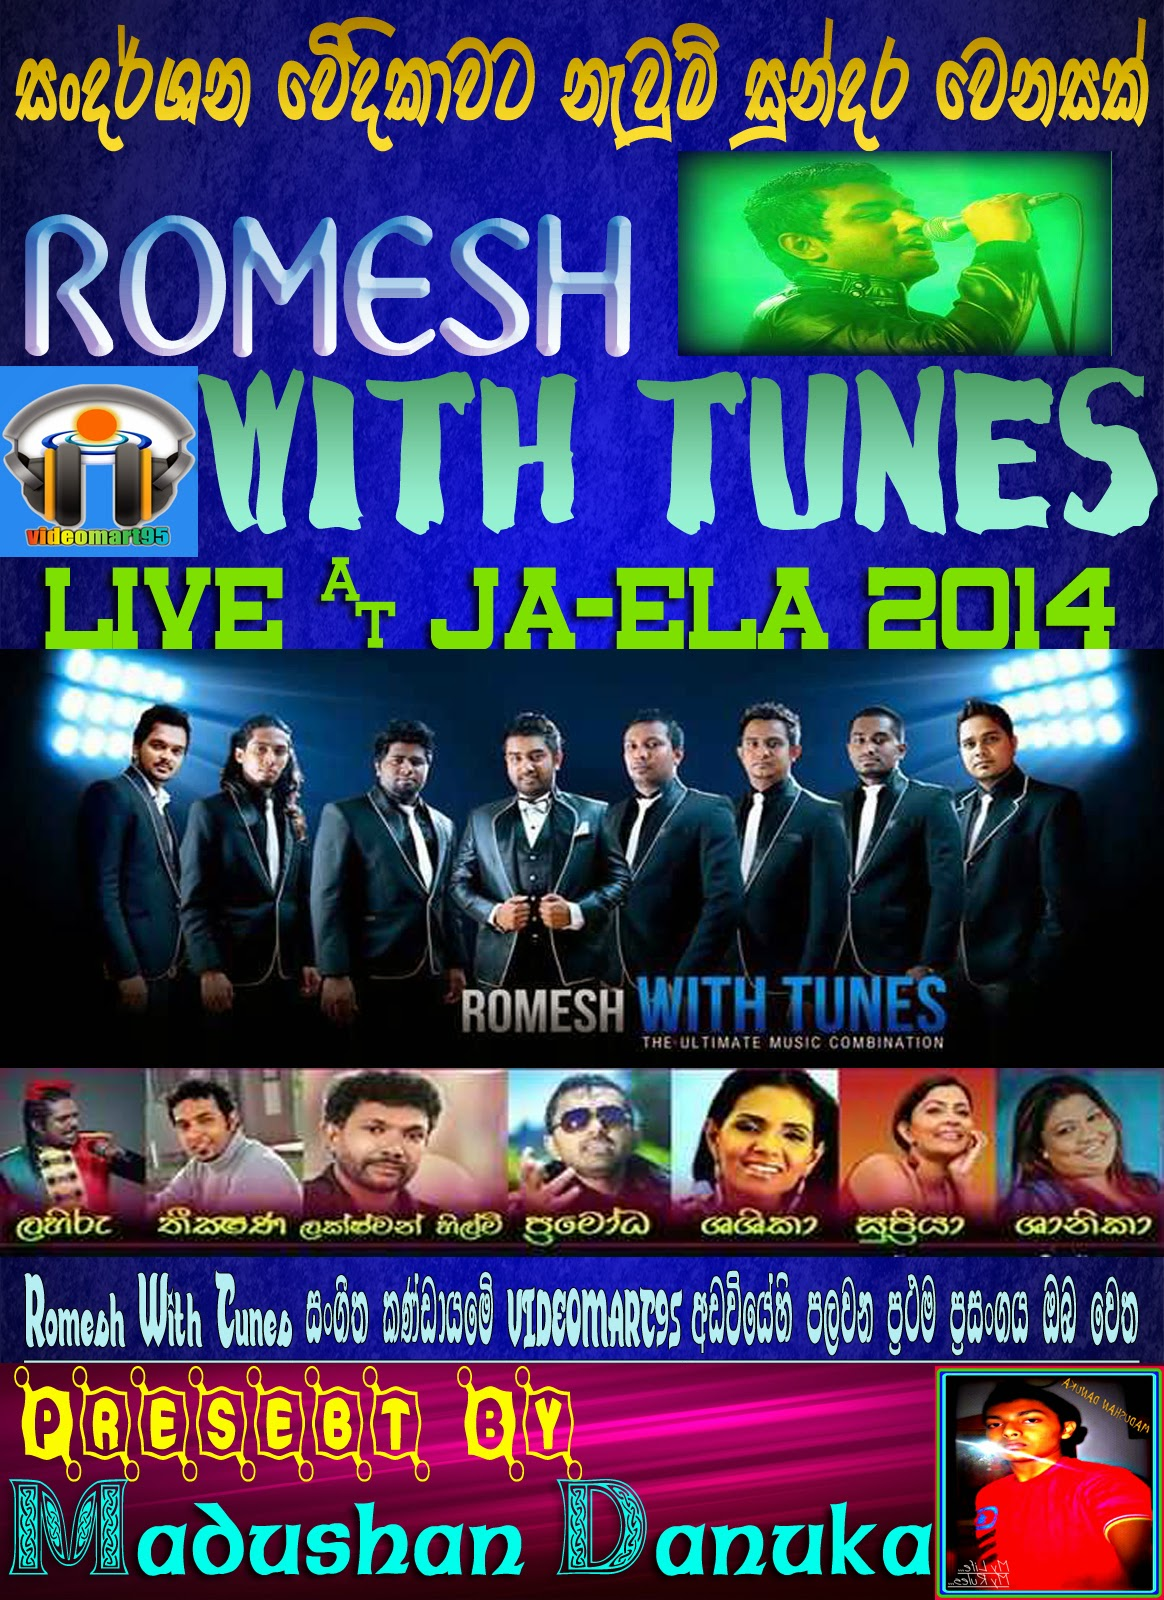 ROMESH WITH TUNES LIVE AT JA-ELA 2014